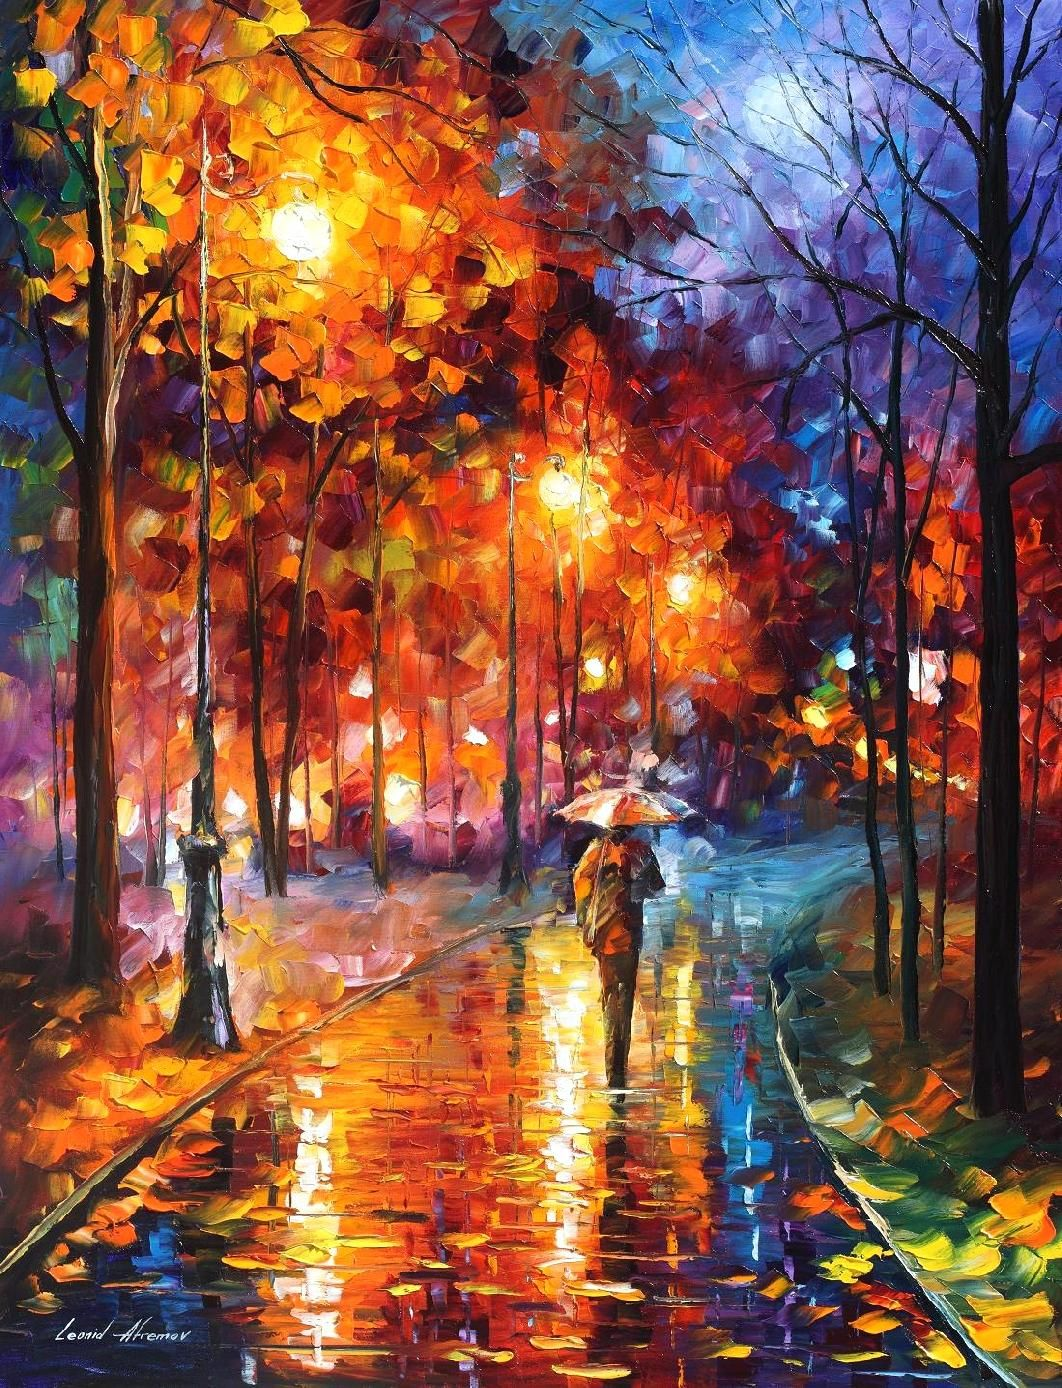 leonid afremov oil on canvas palette knife buy original ForSelling Oil Paintings Online